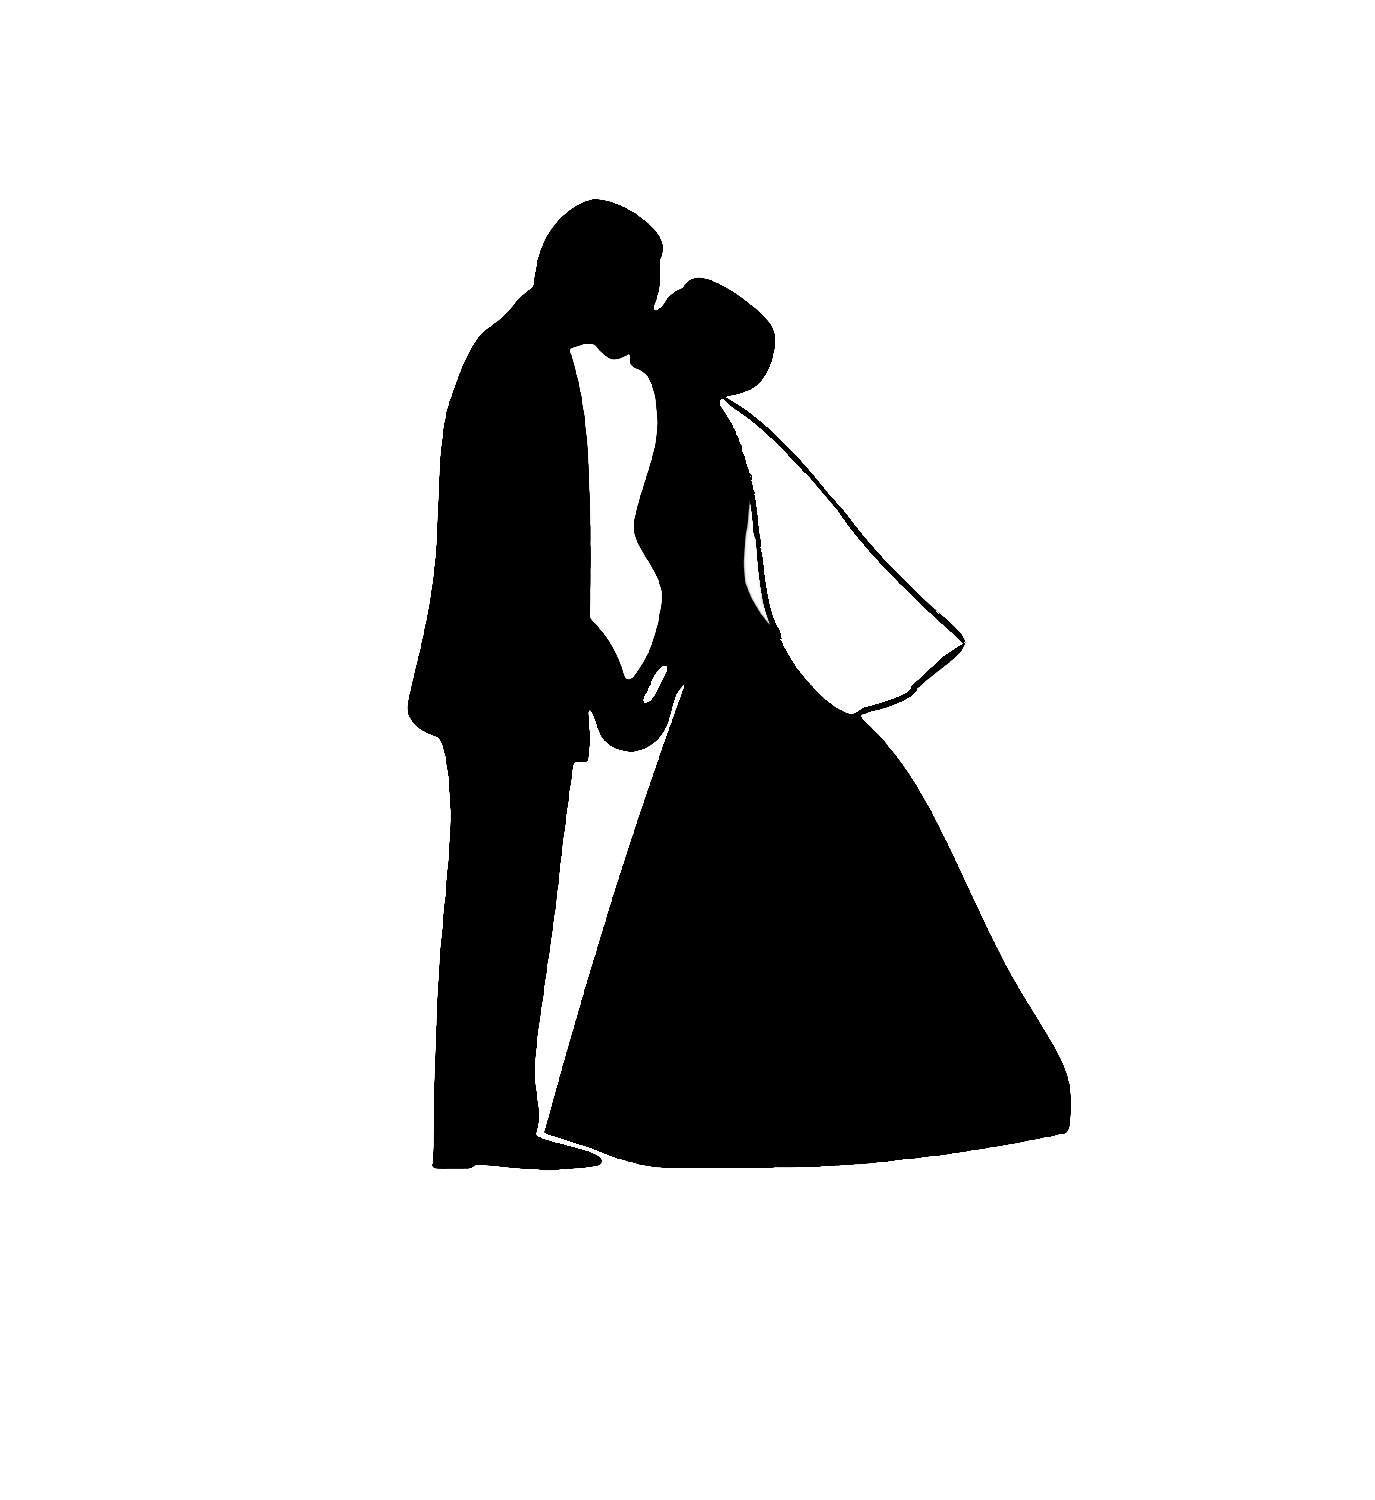 free wedding party silhouette clip art at getdrawings com free for rh getdrawings com wedding party clipart free